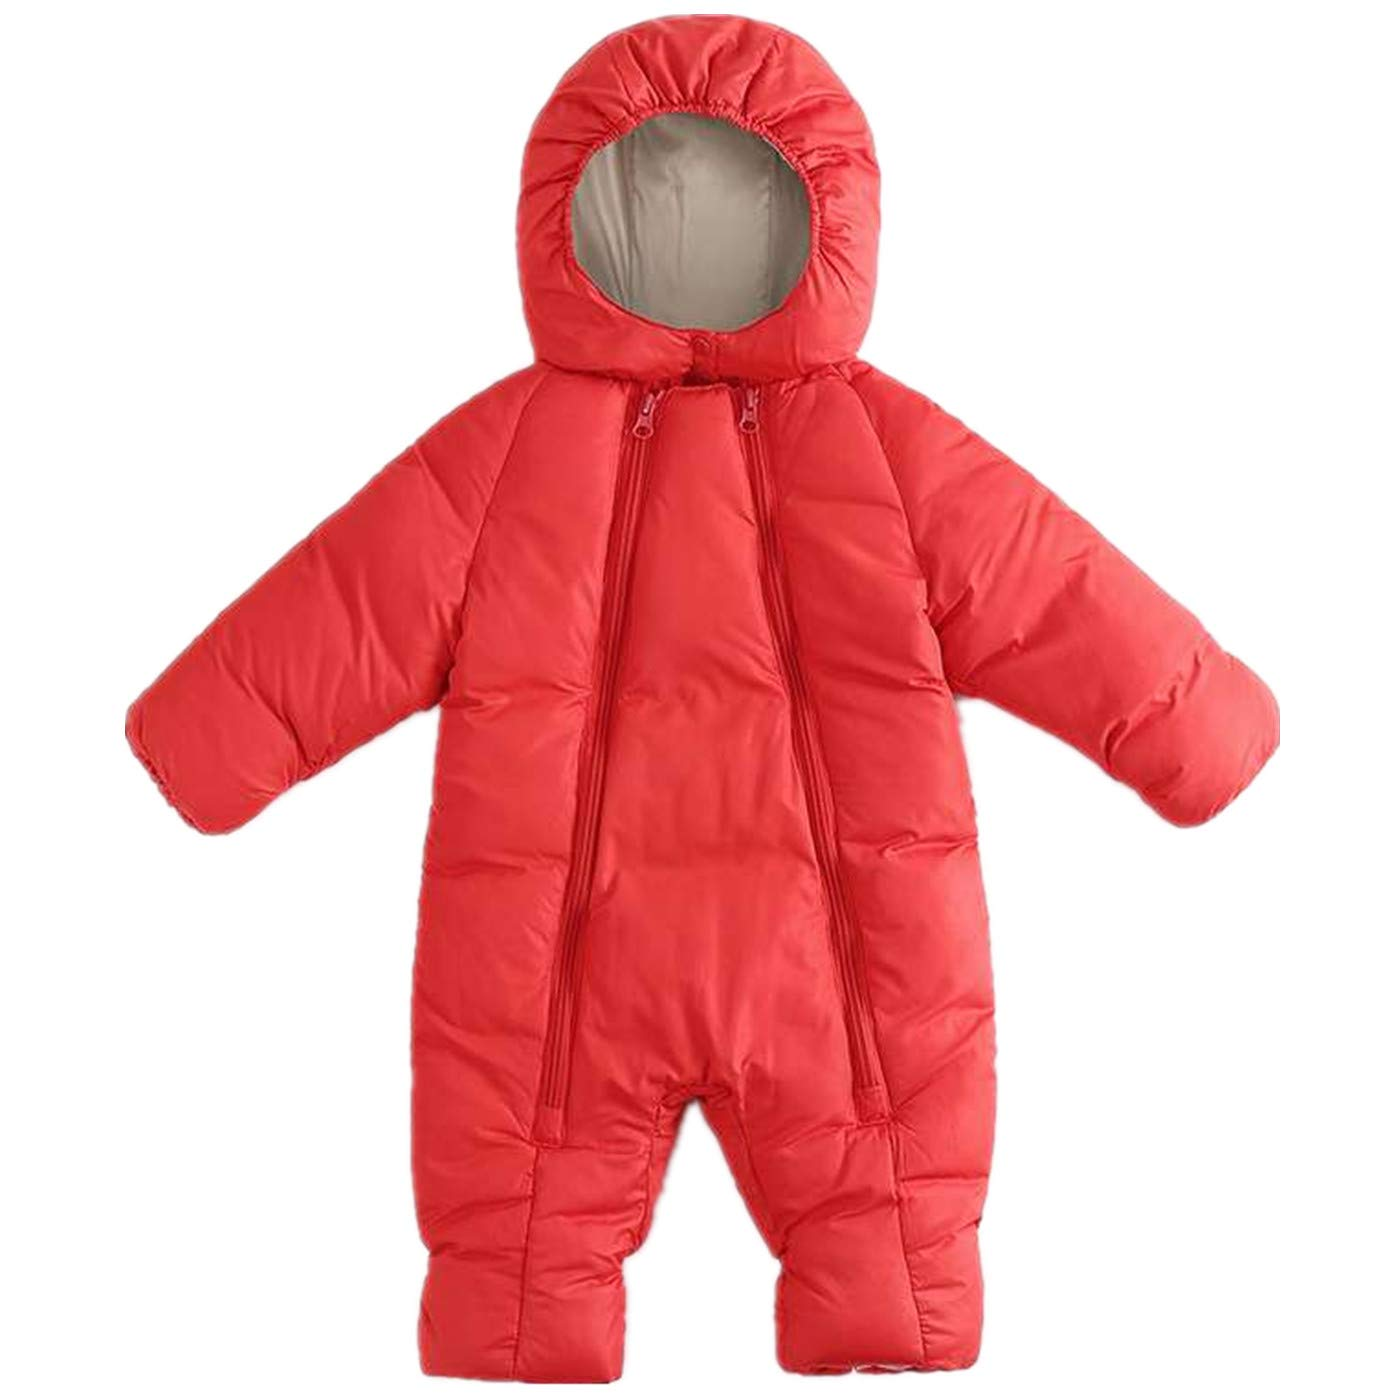 Baby Winter One Piece Snowsuit with Hood Zip Toddler Padded Sleepsuit Bodysuit Red 0-6 Months by Ohrwurm